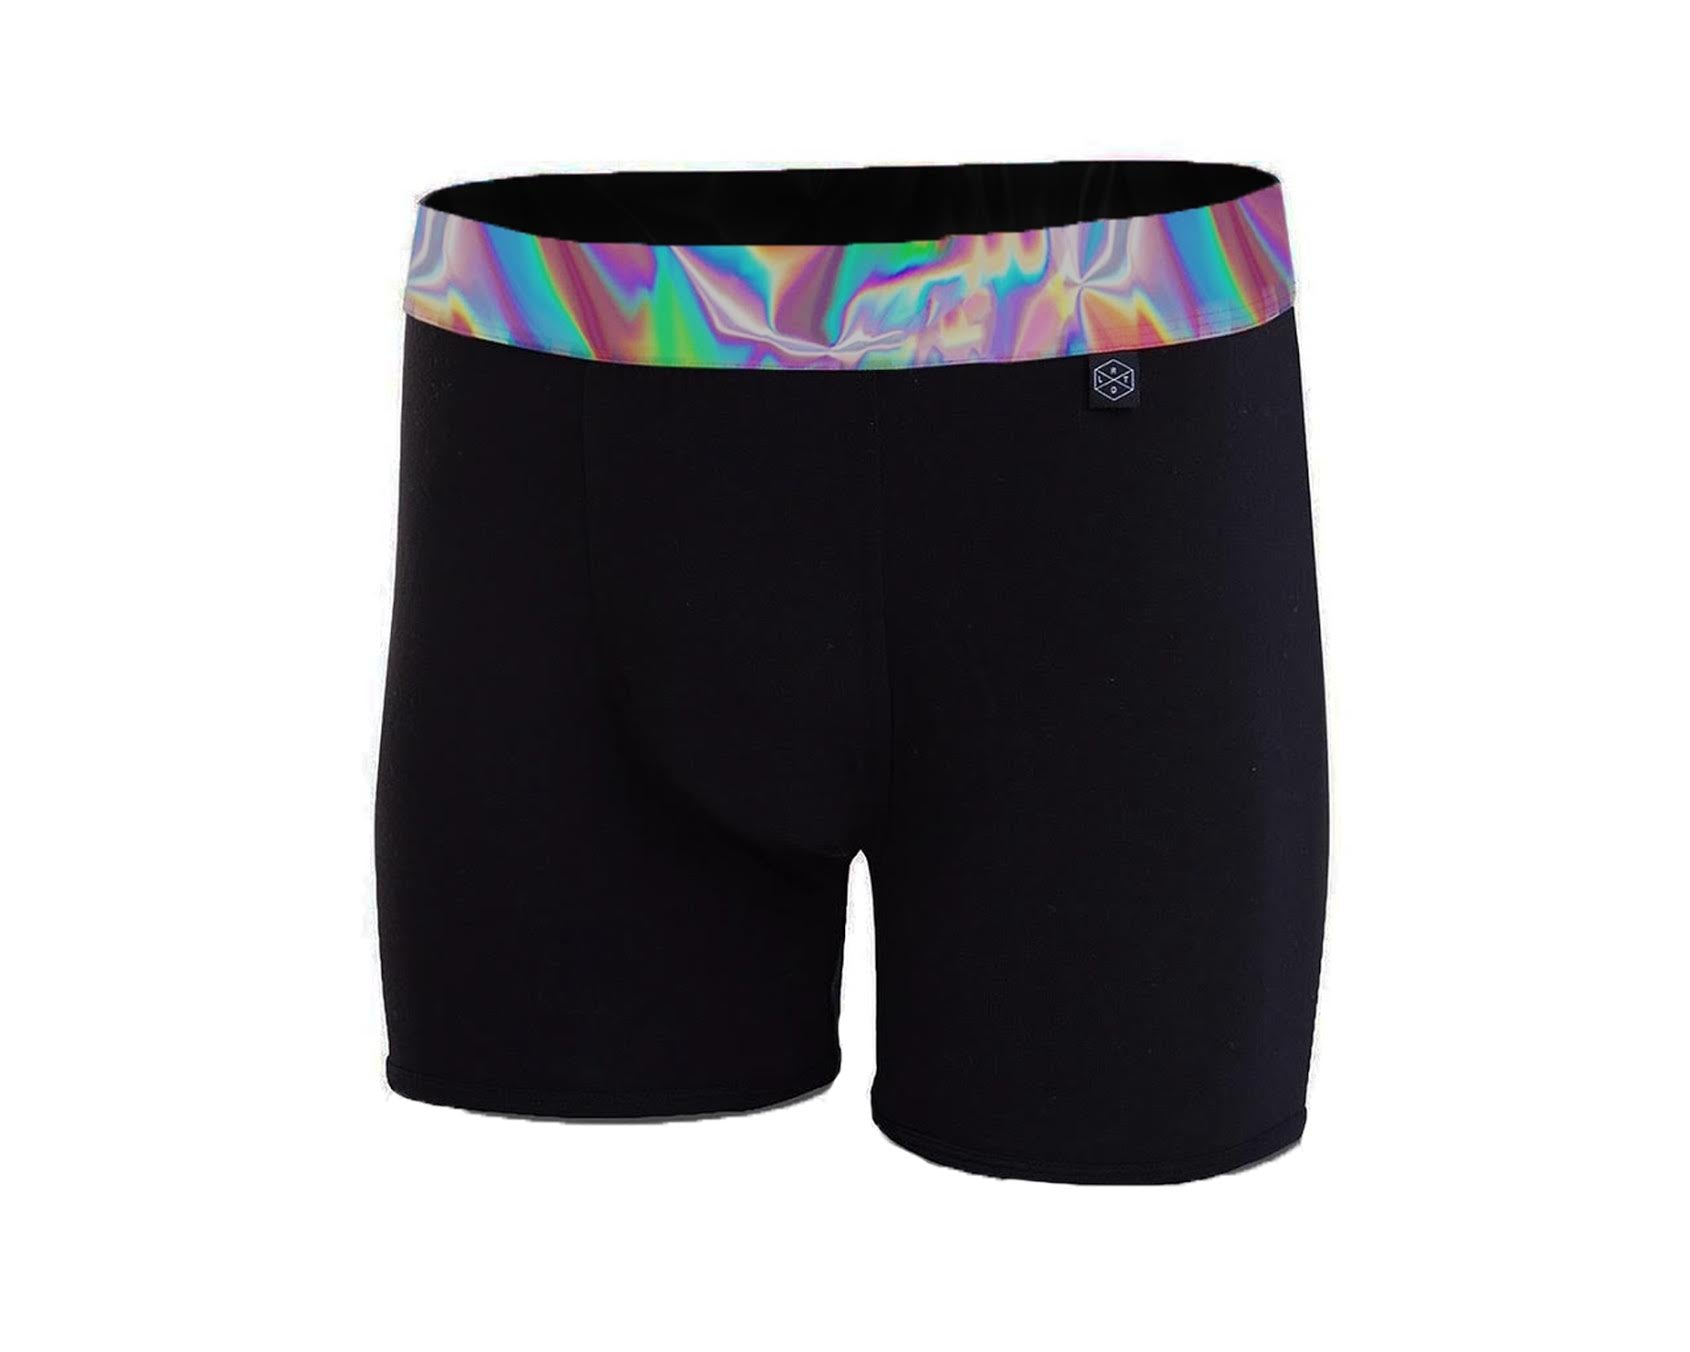 The Trippy Boxer Brief